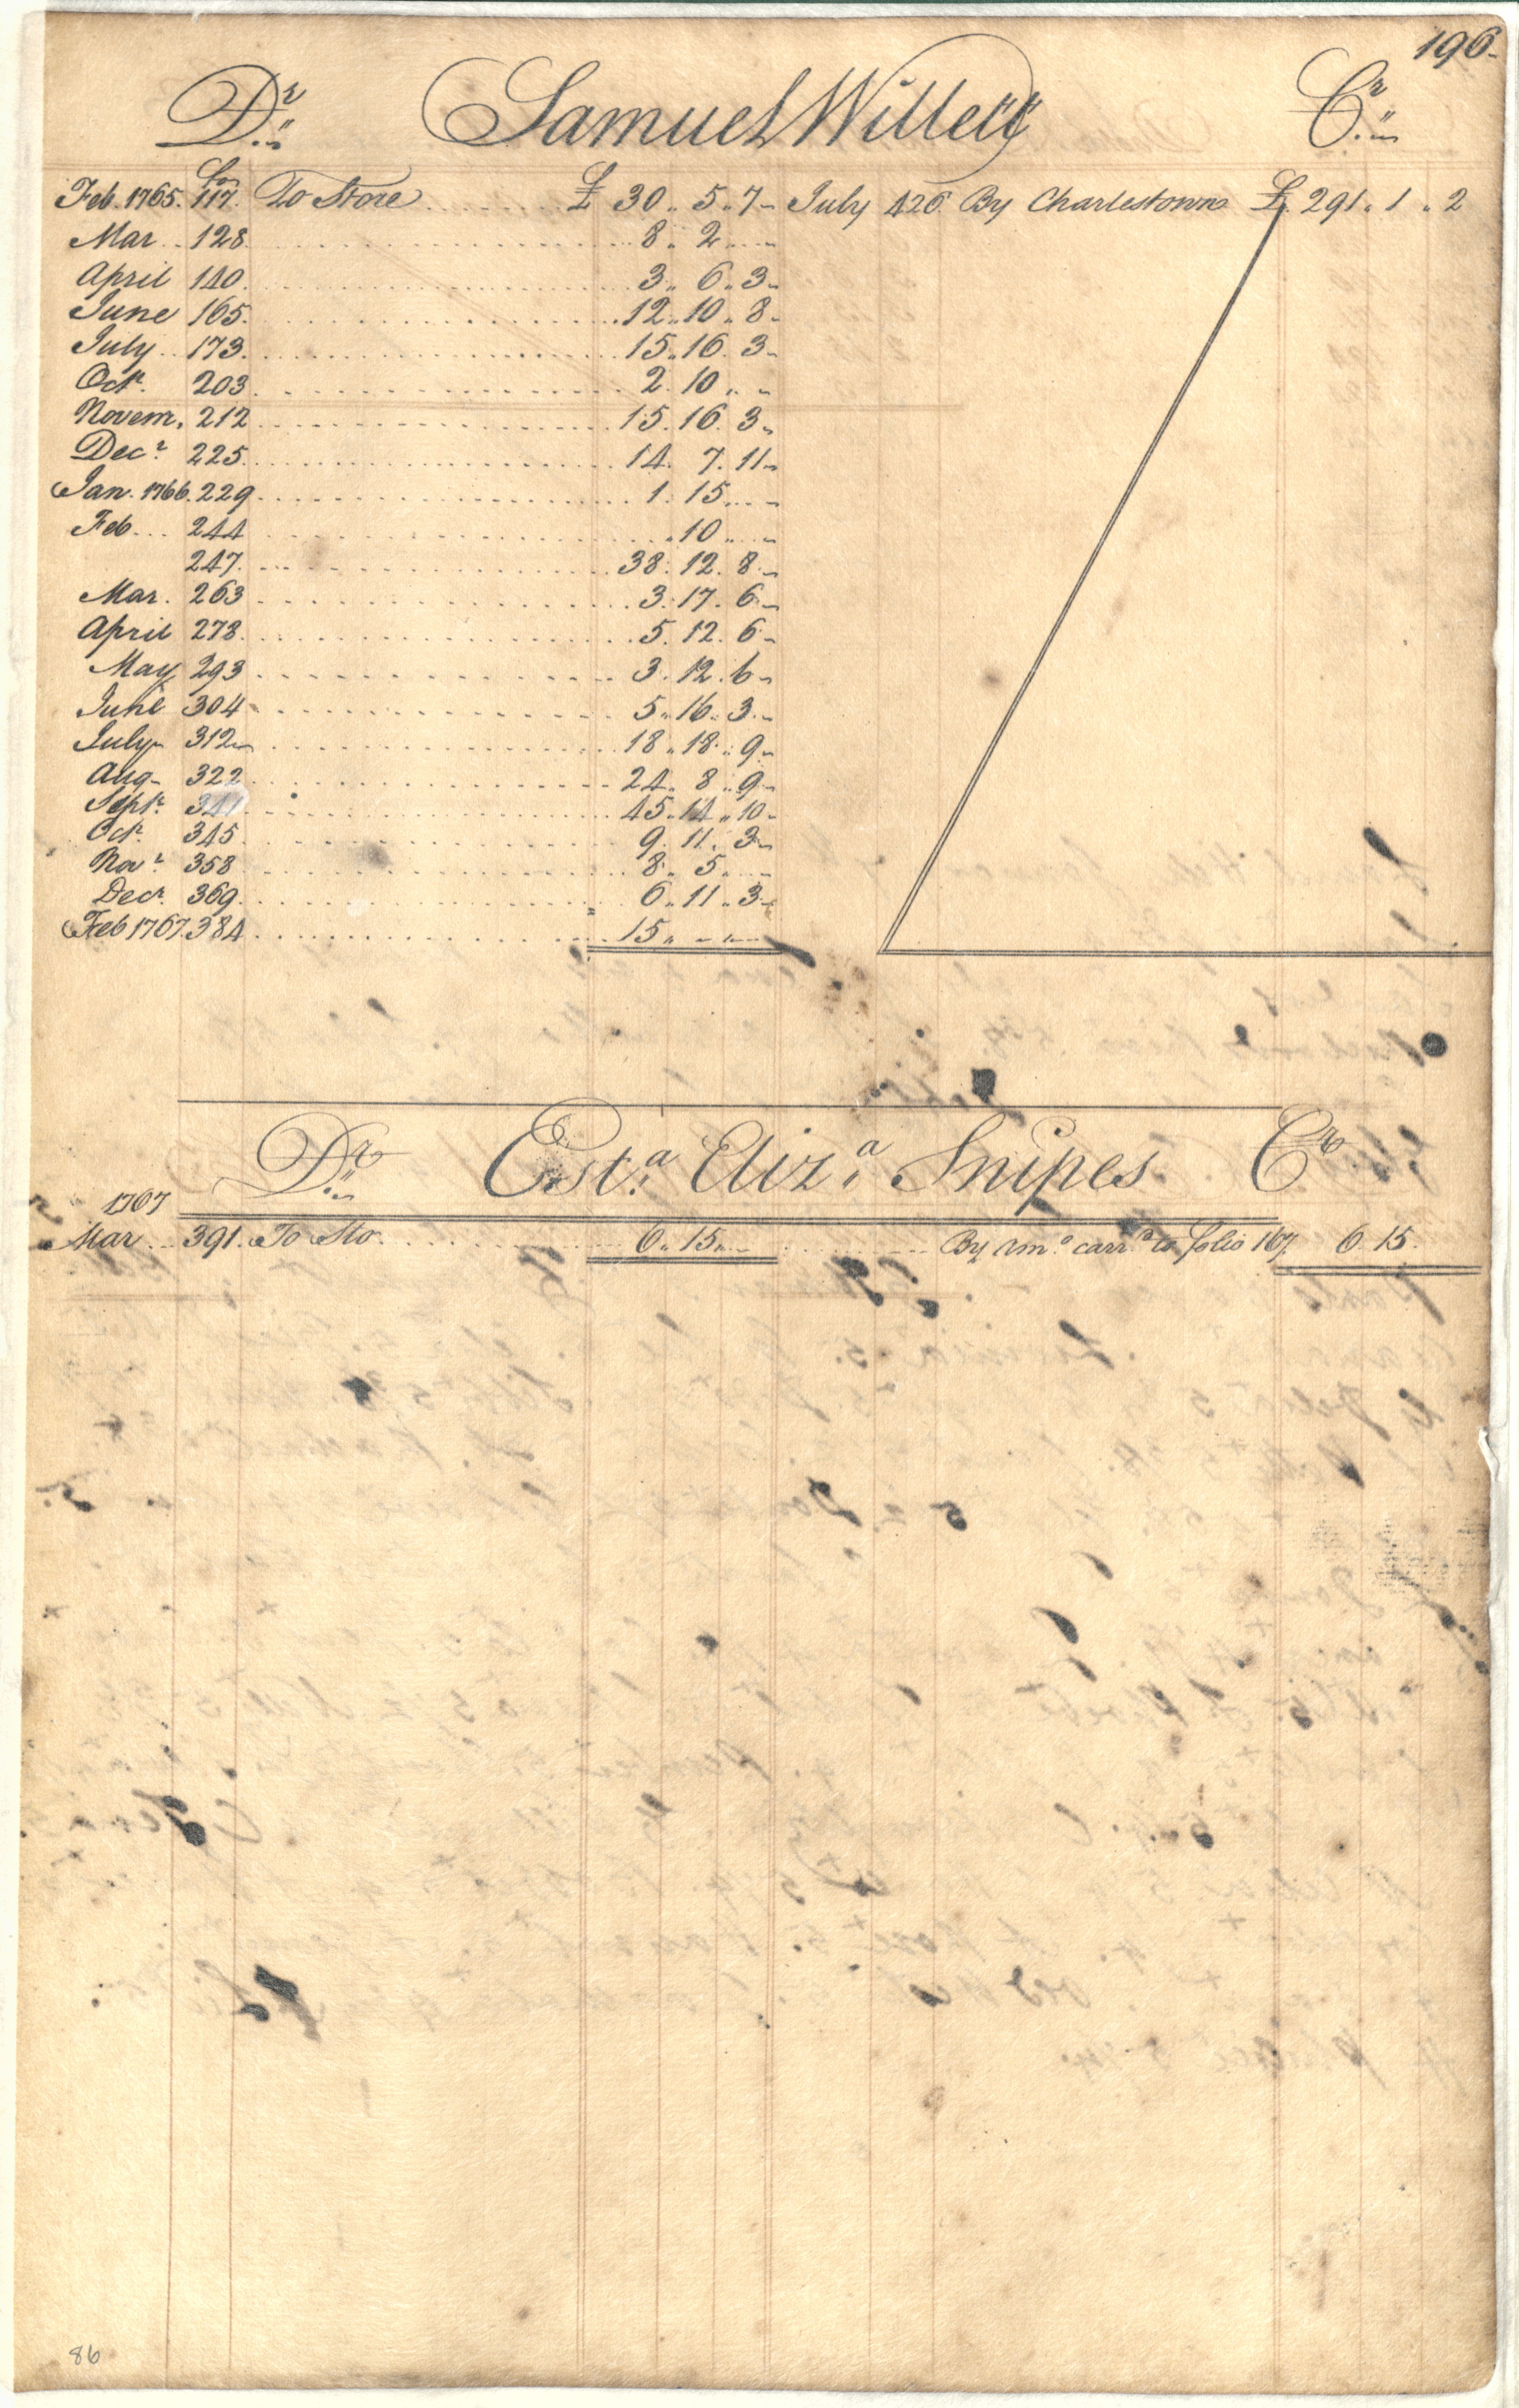 Plowden Weston's Business Ledger, page 196